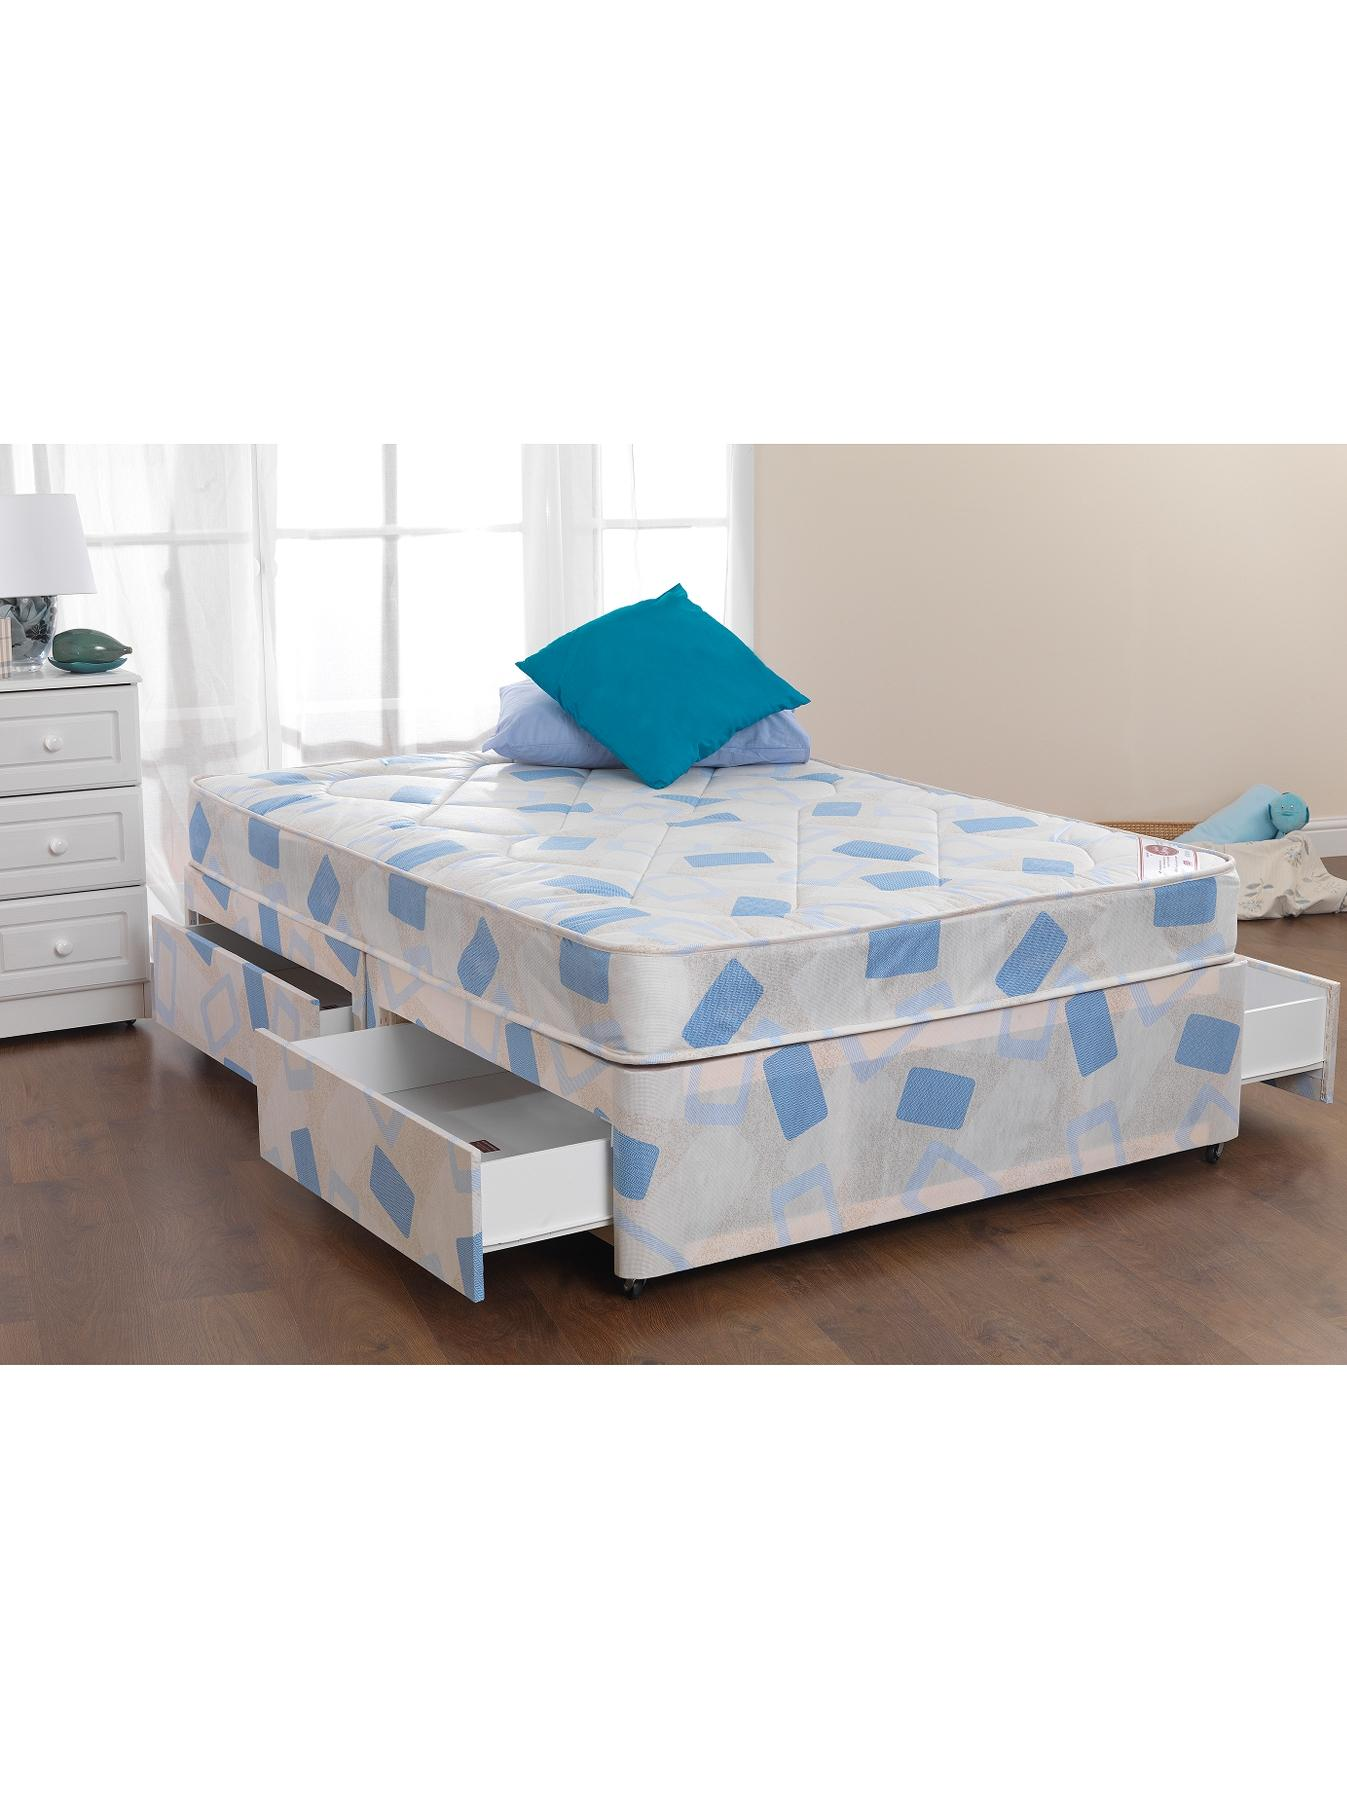 Silentnight westland open spring divan bed medium firm Three quarter divan bed